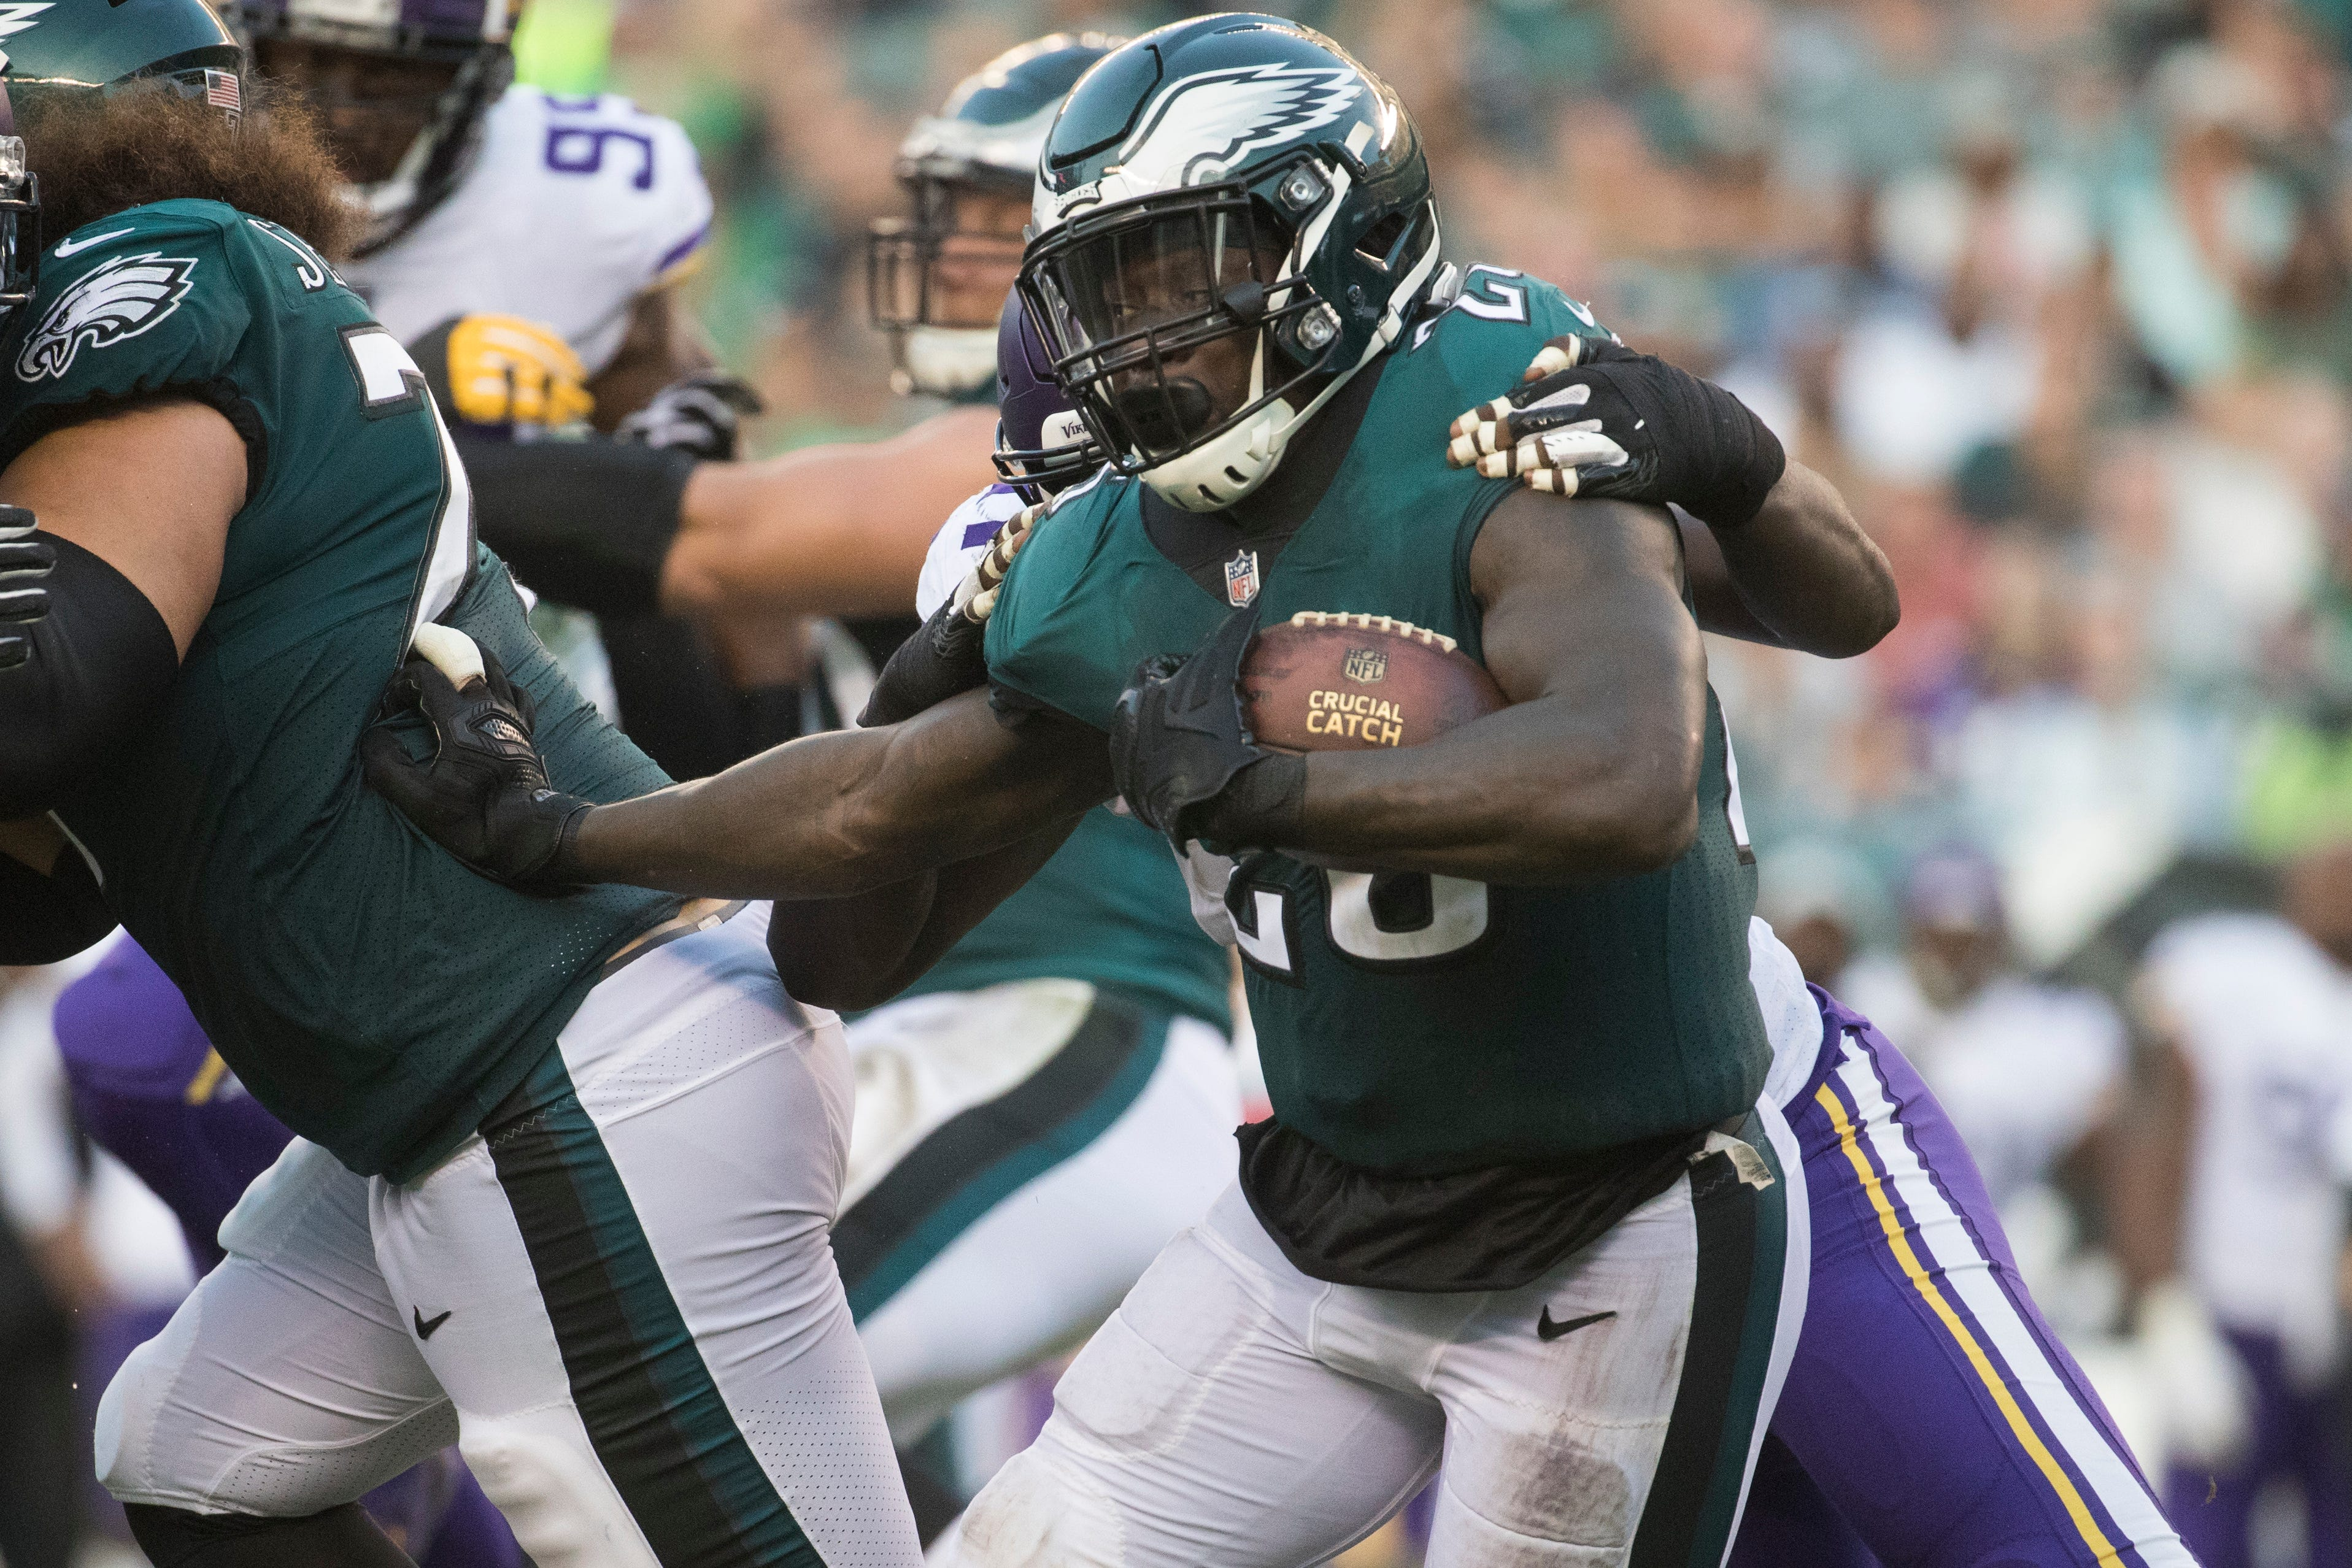 Eagles place running back Jay Ajayi on IR; could a Le'Veon Bell trade be next?